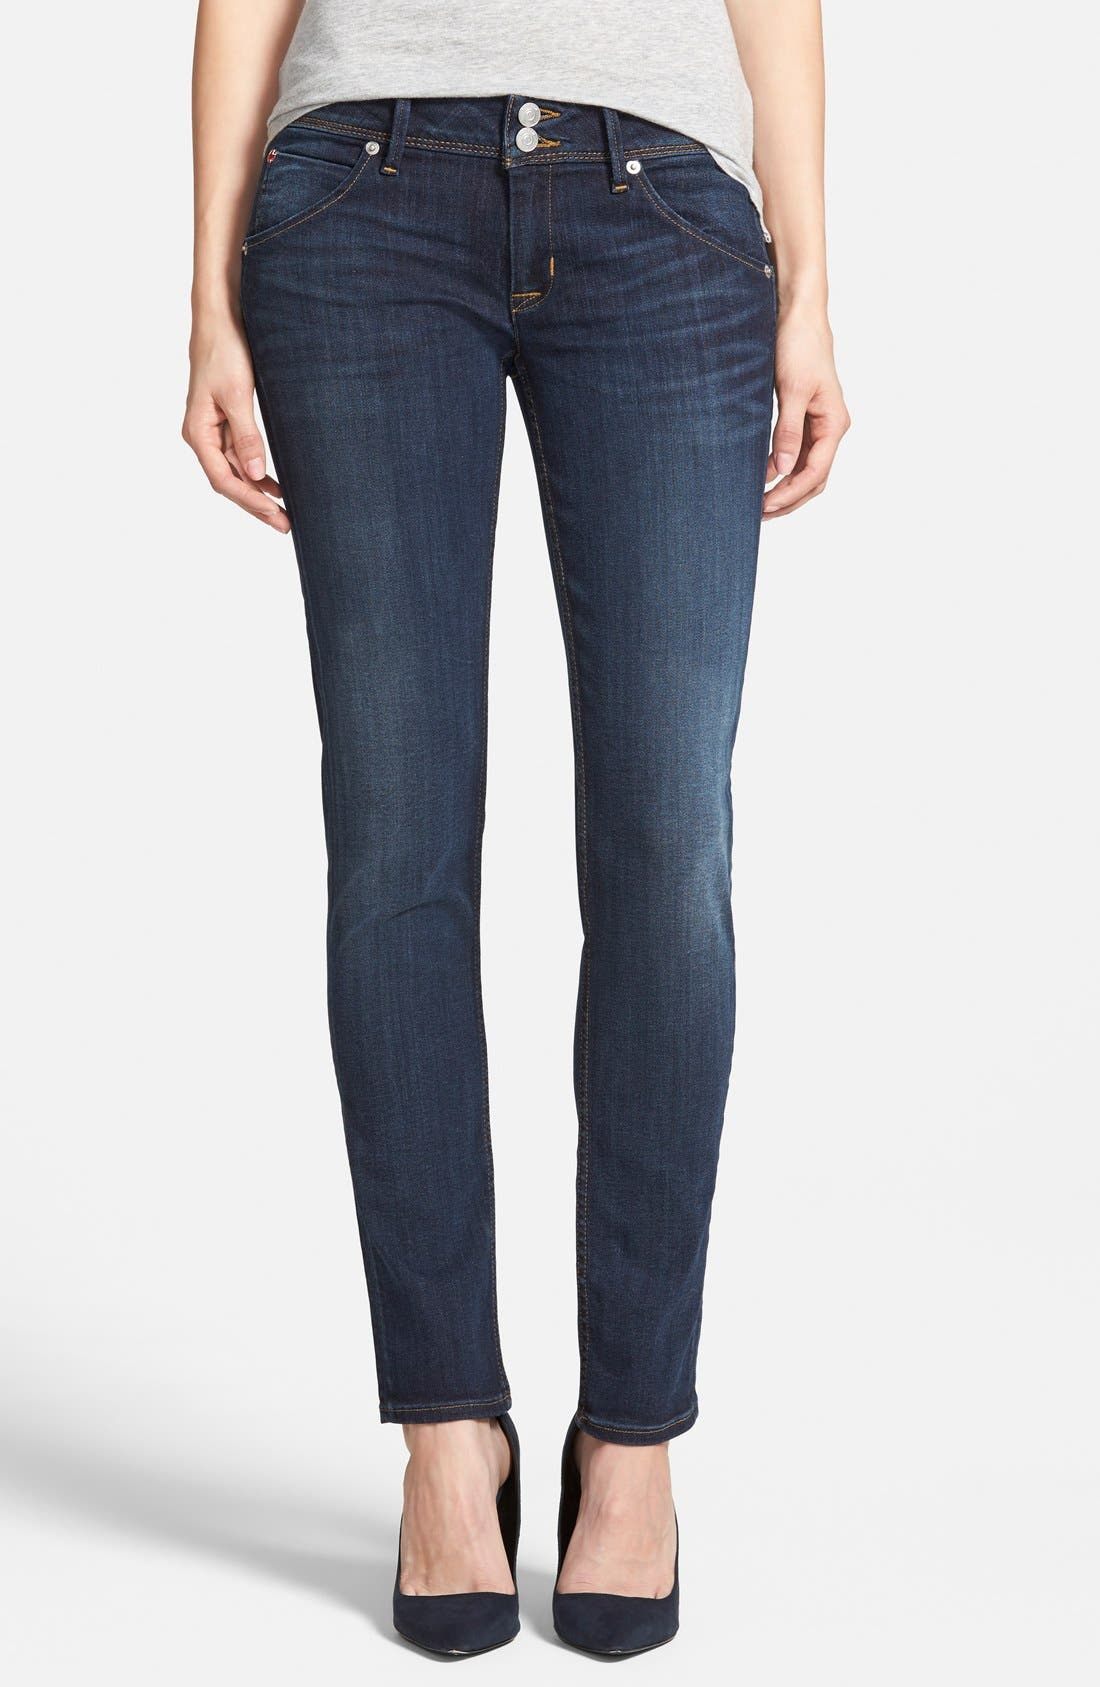 'Collin' Skinny Jeans,                             Main thumbnail 1, color,                             401